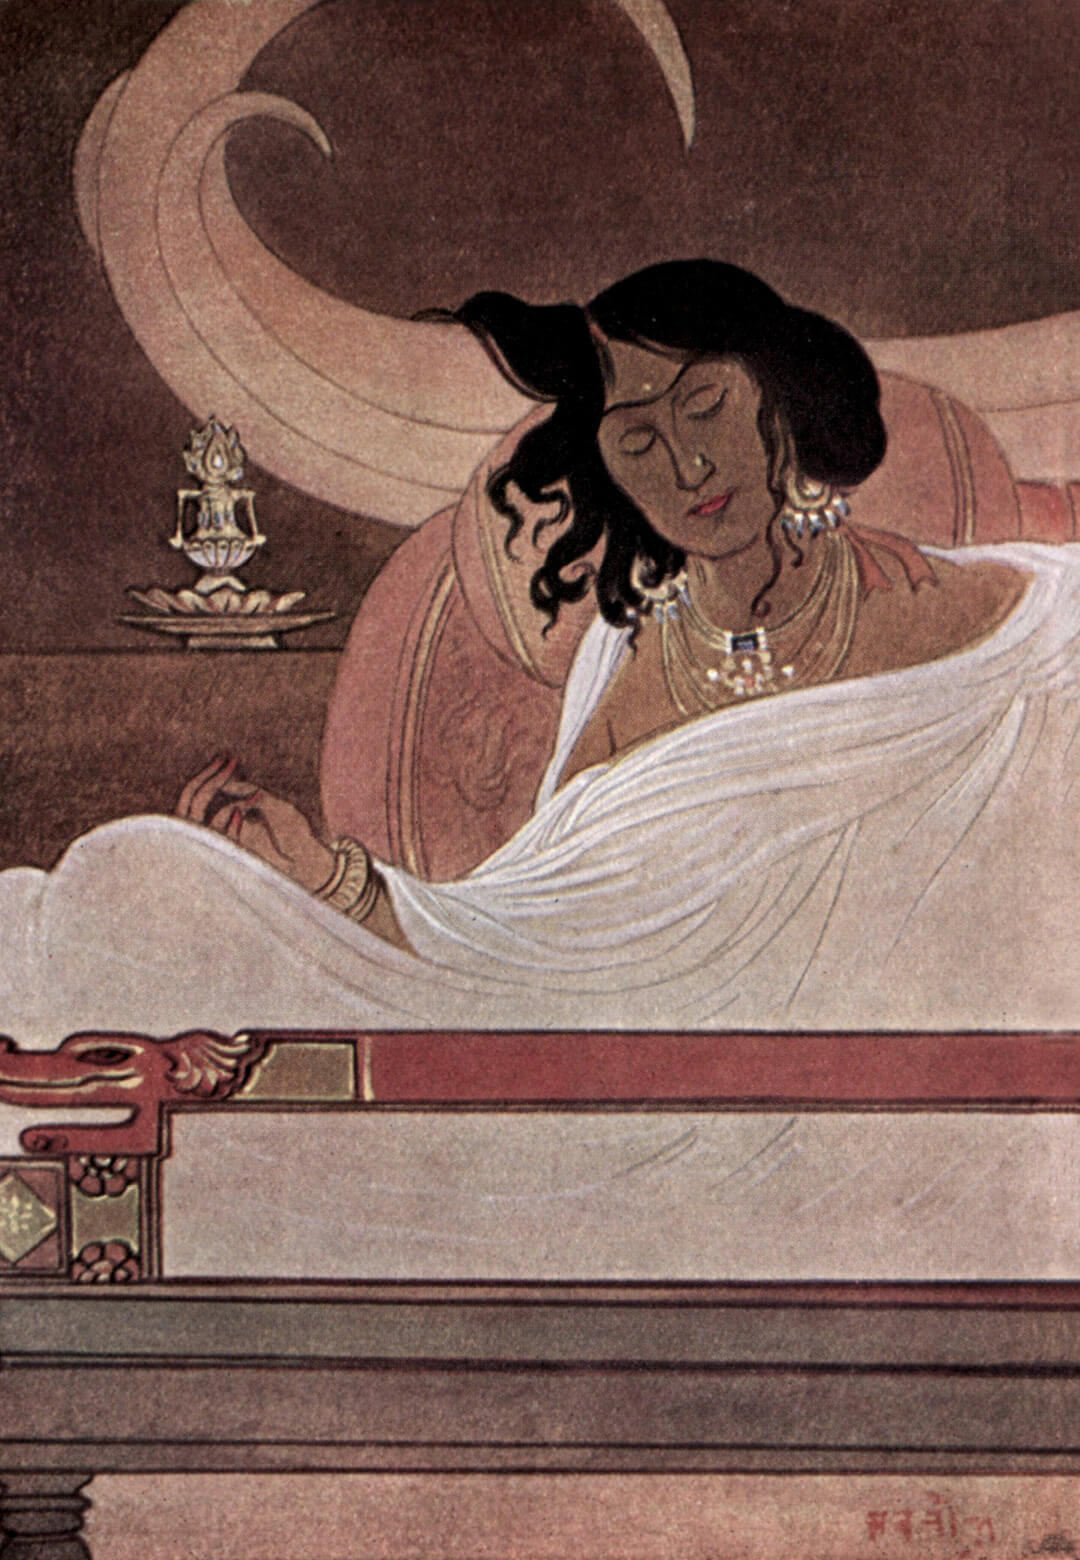 'The Bodhisattva's Tusks', 1914, as found in 'Myths of the Hindus and Buddhists' by Sister Nivedita and Ananda Kentish Coomaraswamy | The Bodhisattva's Tusks | Abanindranath Tagore | STIRworld